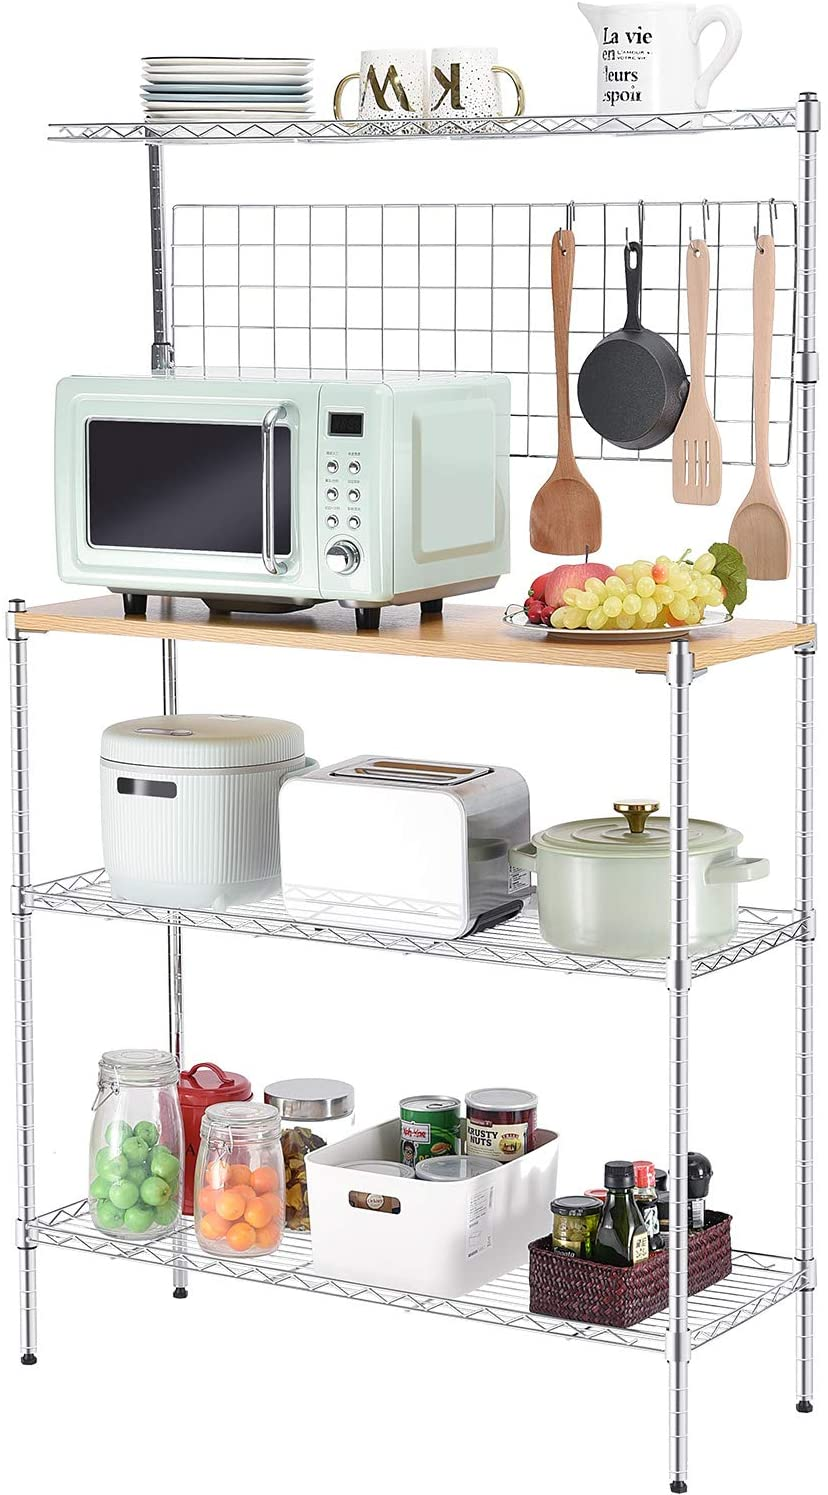 TOOLF Standing Baker's Racks with Wood Table, Kitchen Microwave Oven Stand, 4-Tier Metal Utility Storage Shelf with Mesh Panel, 6 Hooks, Height Adjustable Free Standing Rack for Kitchen, Garage